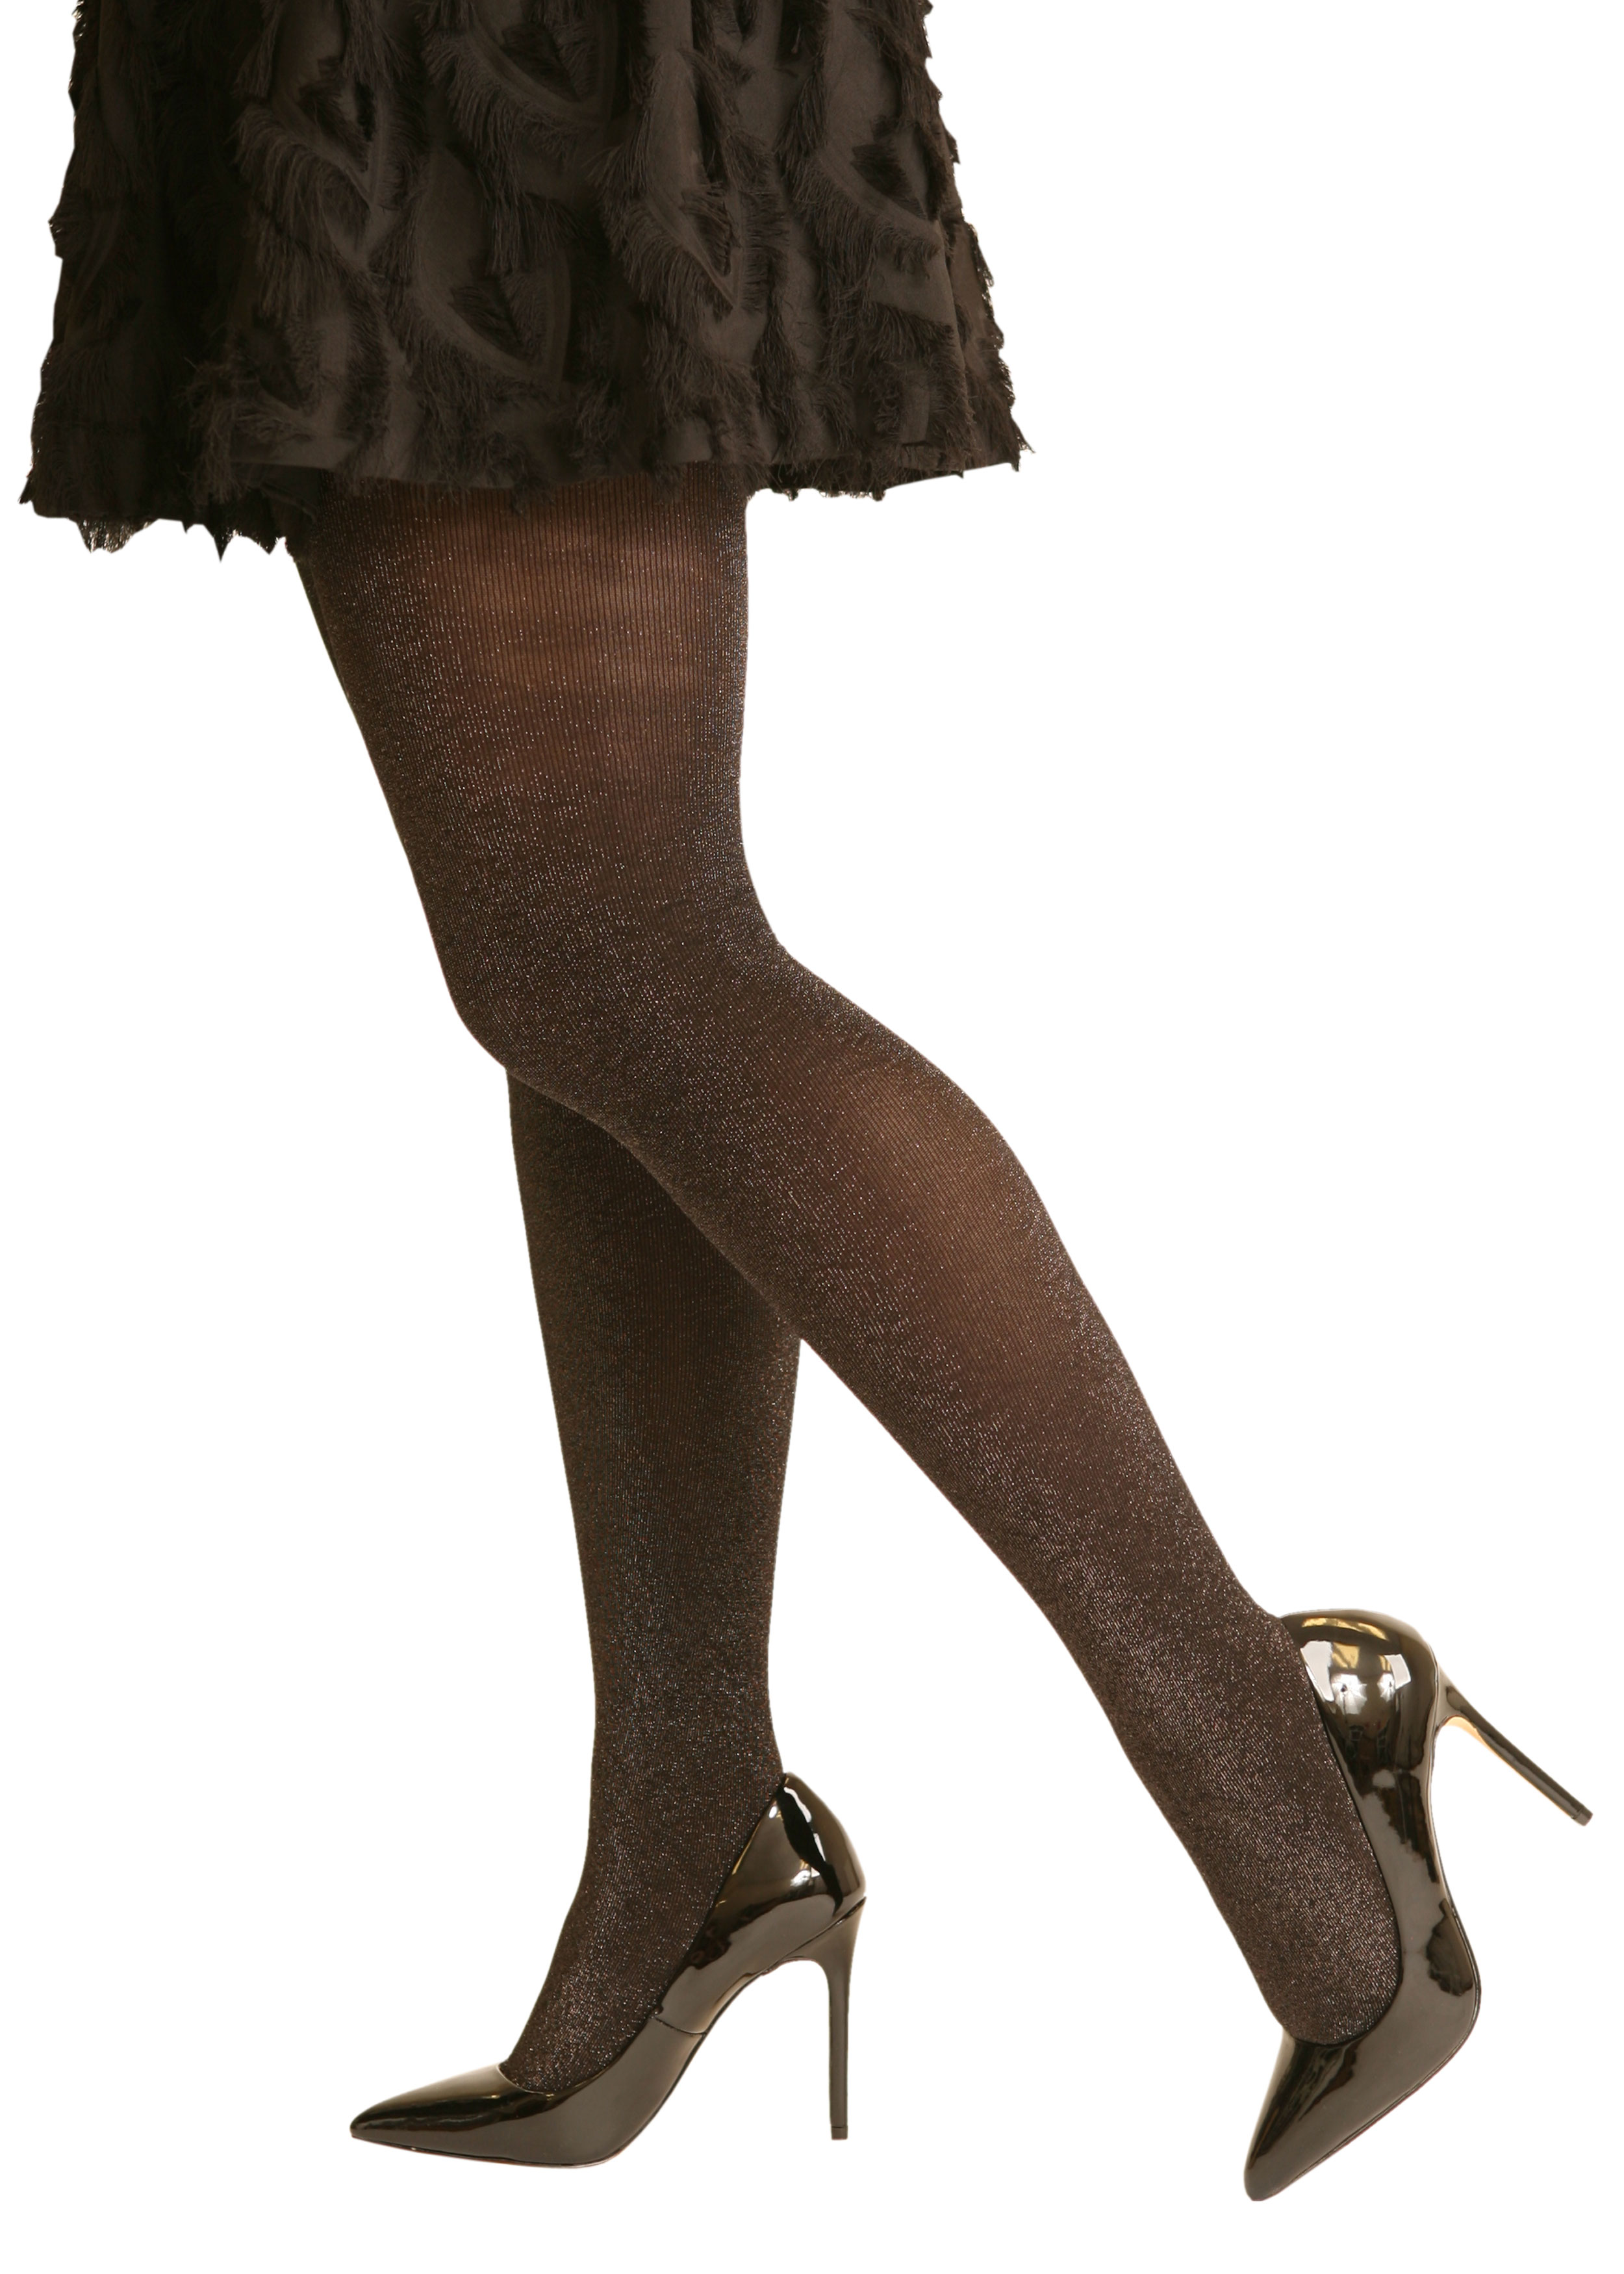 3127a65ad79 Silkies Gold Sparkle Tights